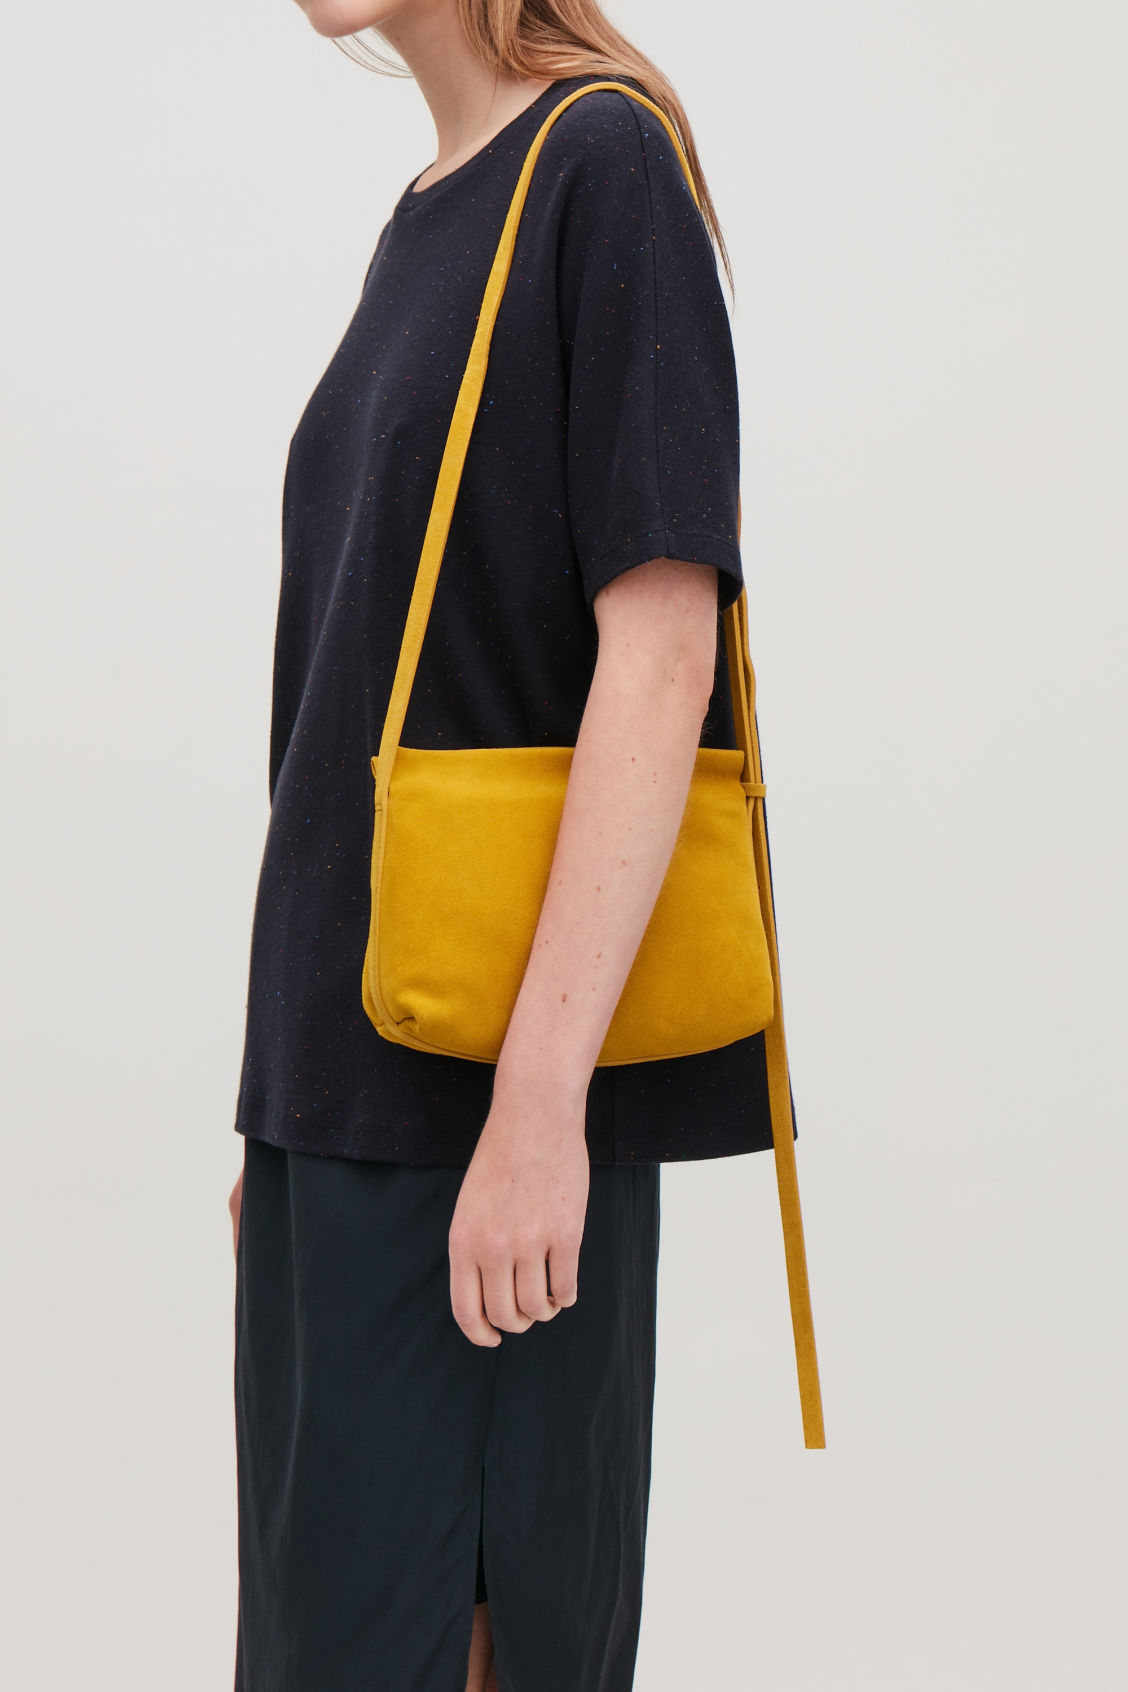 538e7c64aa9b Detailed image of Cos textured leather shoulder bag in yellow